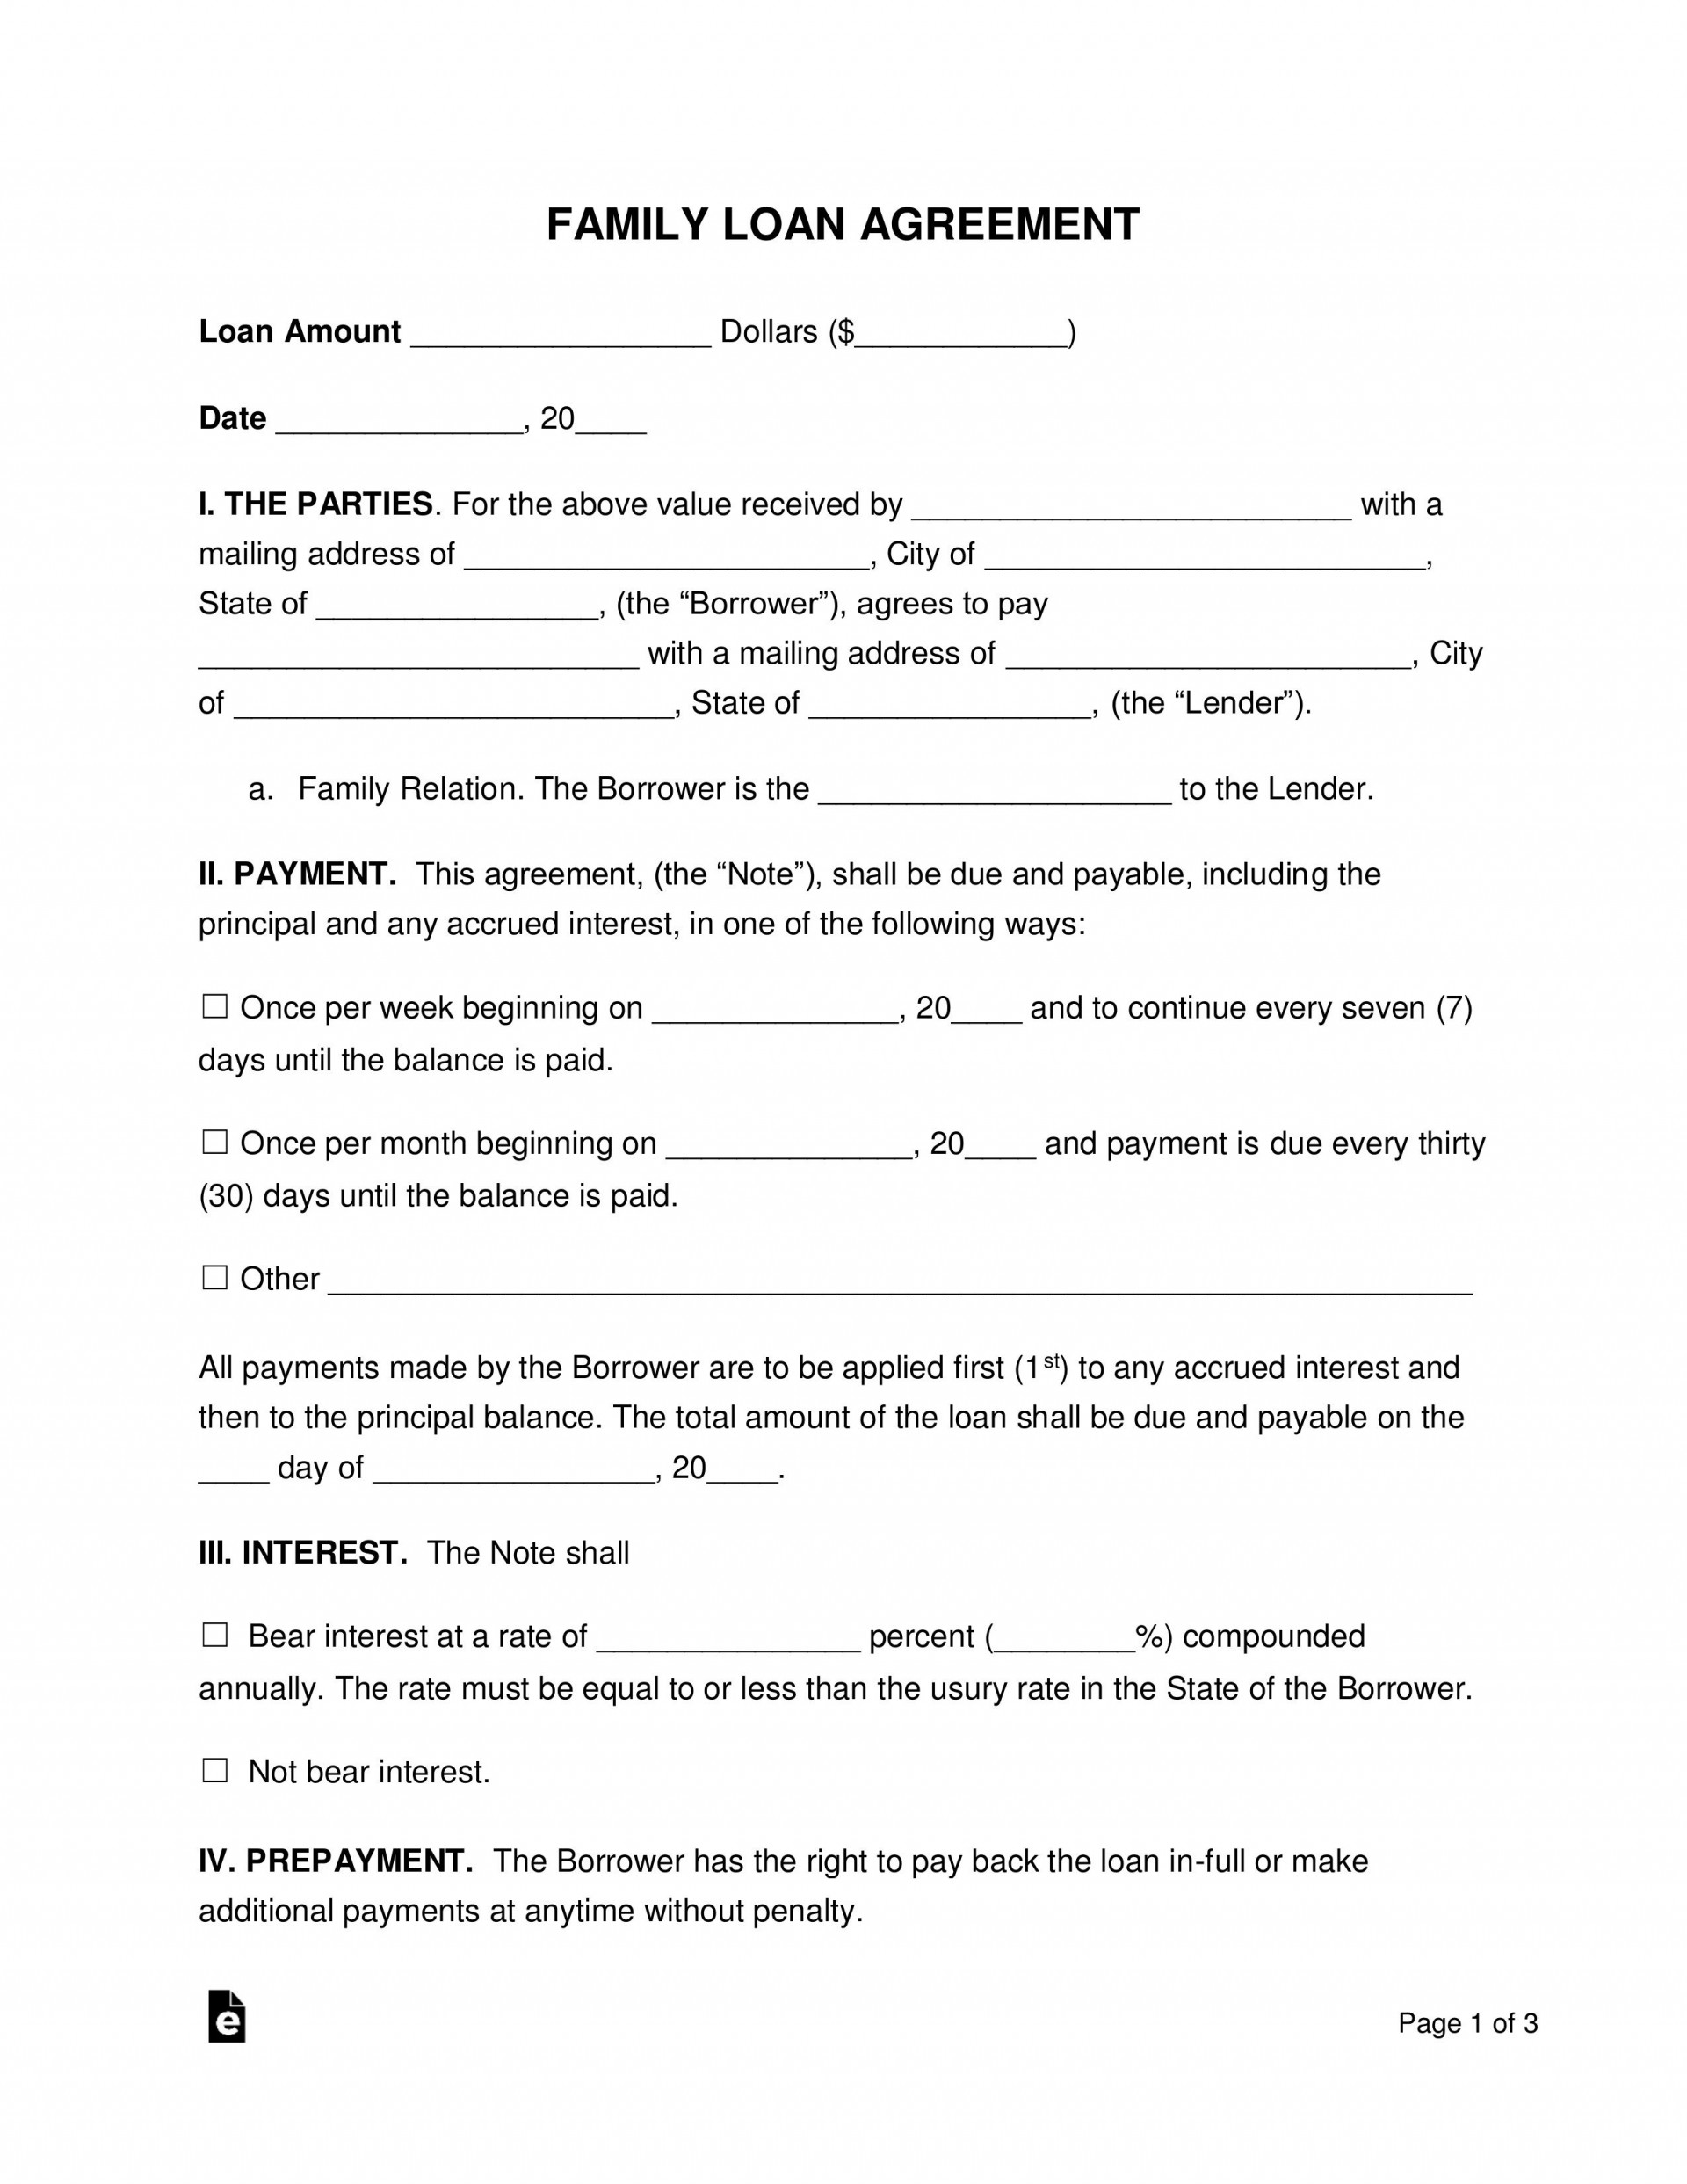 003 Awful Family Loan Agreement Template Idea  Free Uk Friend And Simple Australia1920